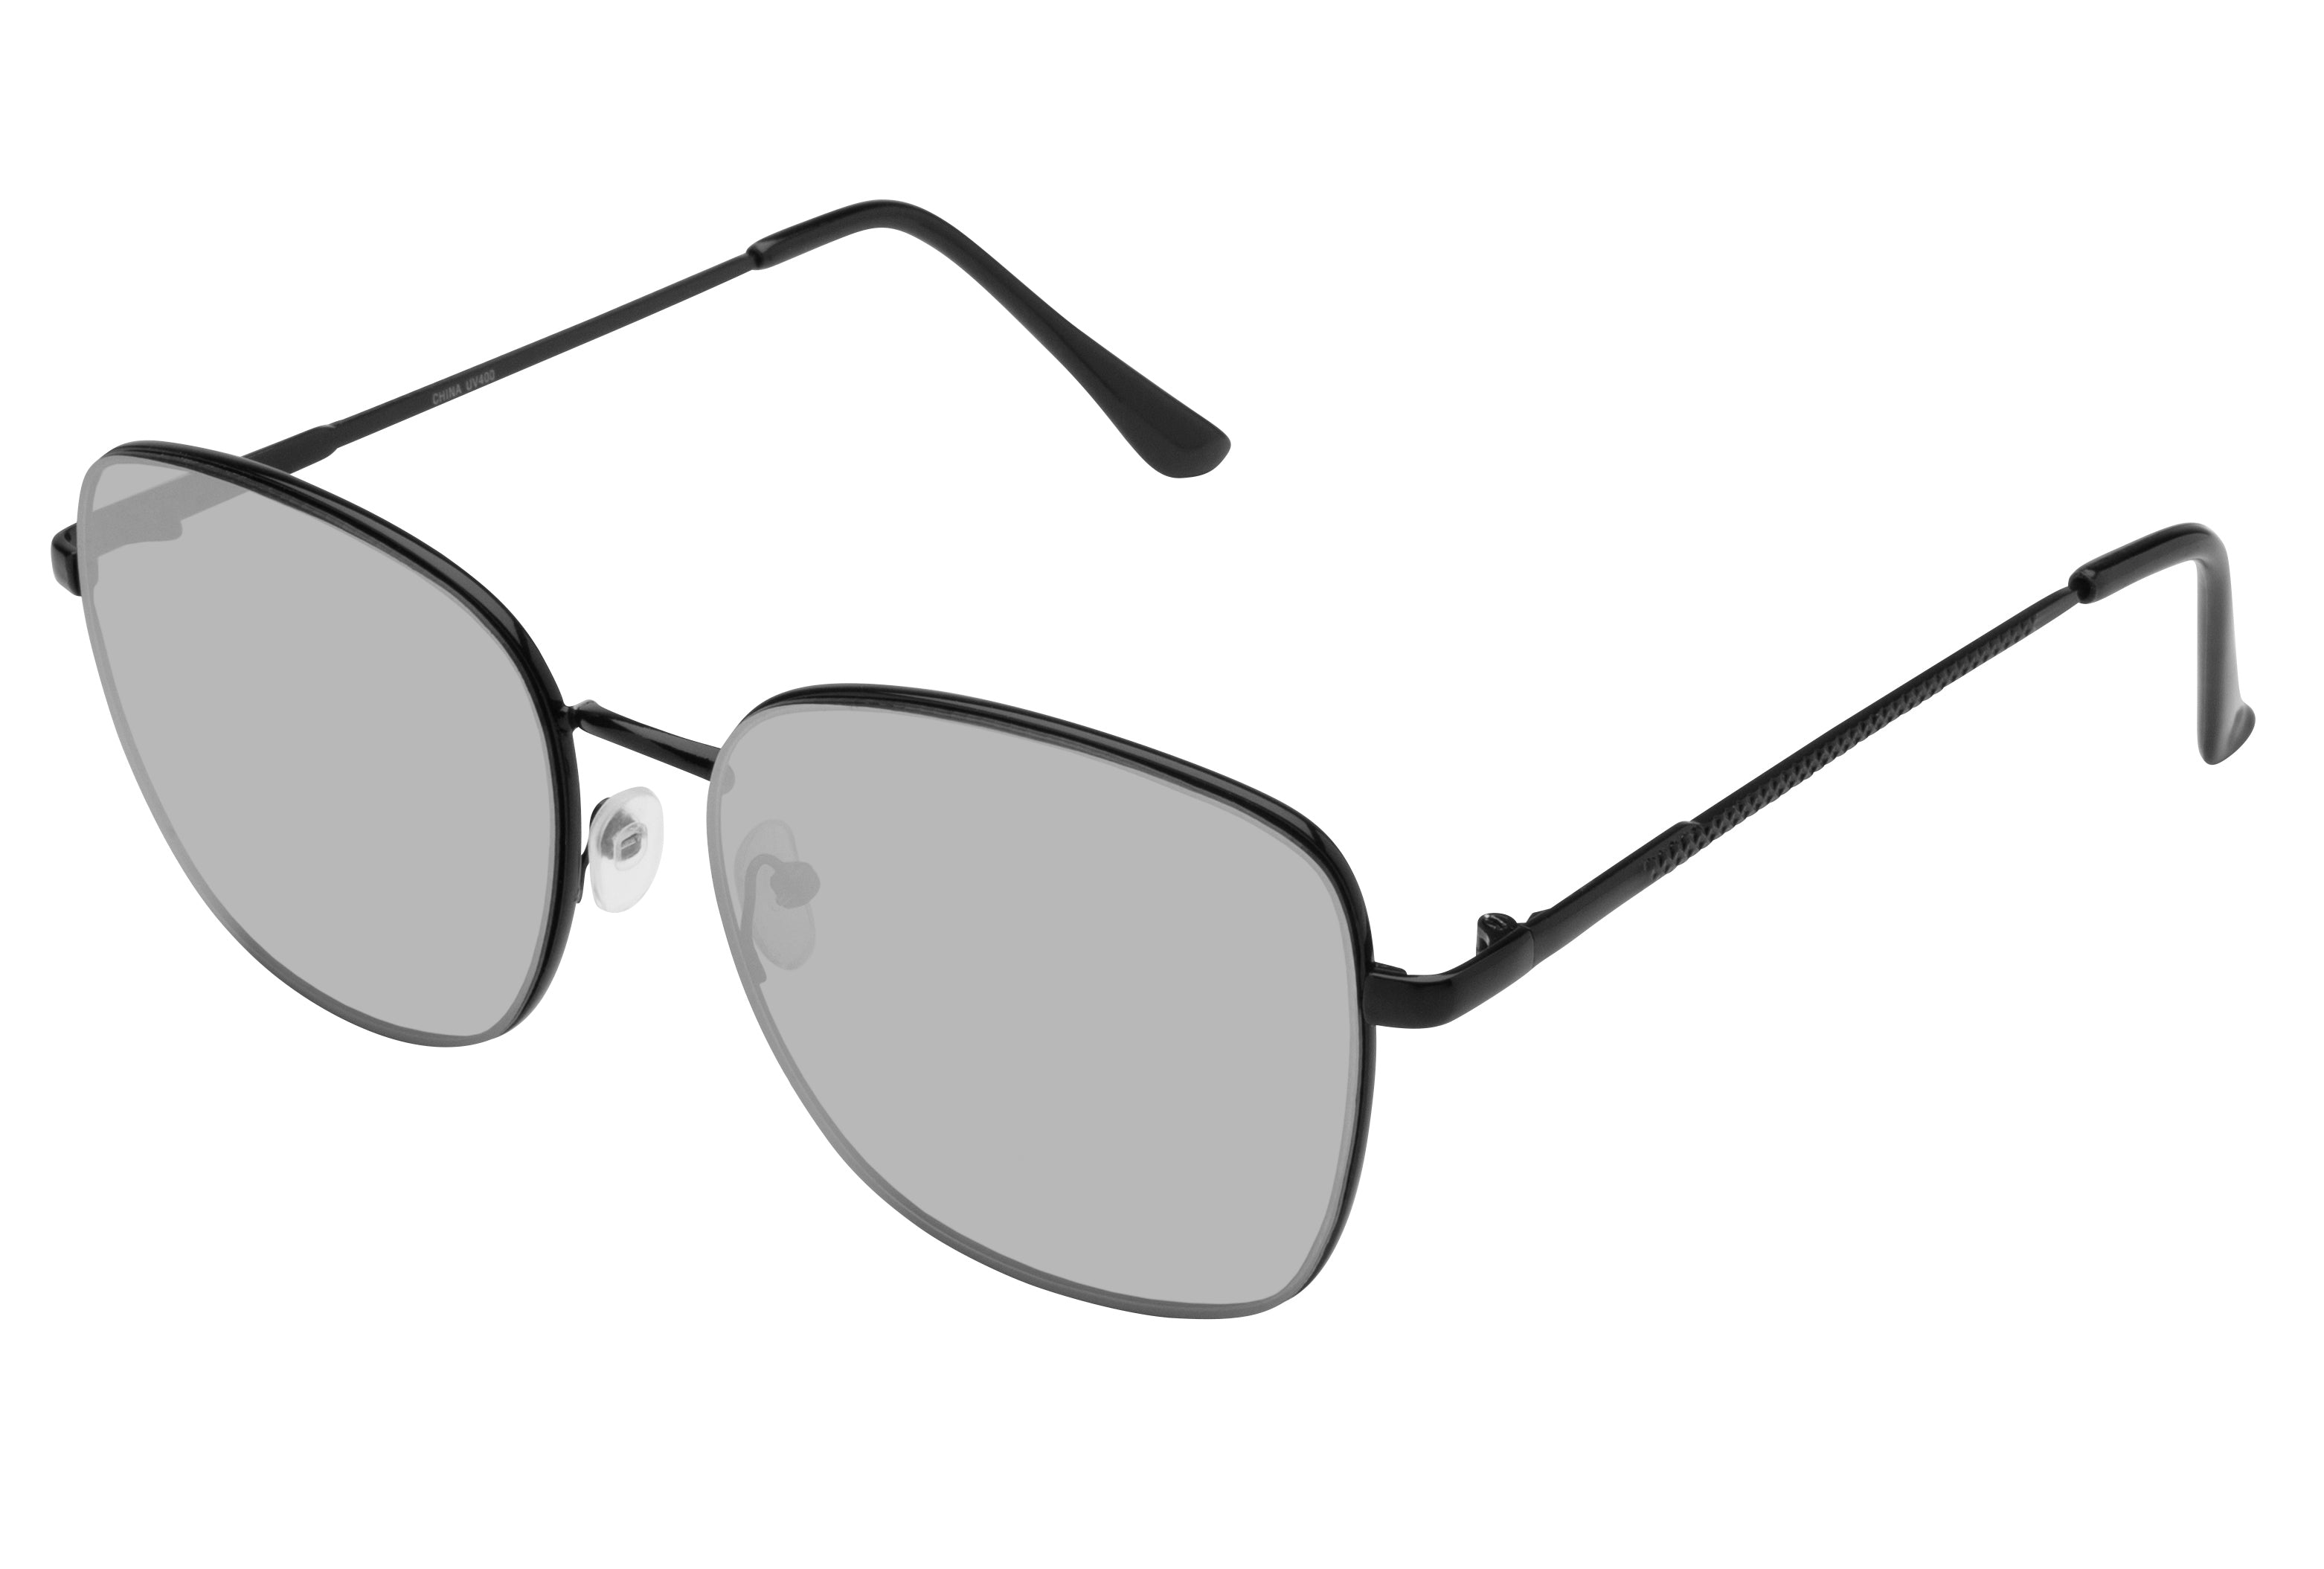 66137 - Vox Women's Fashion Sunglasses